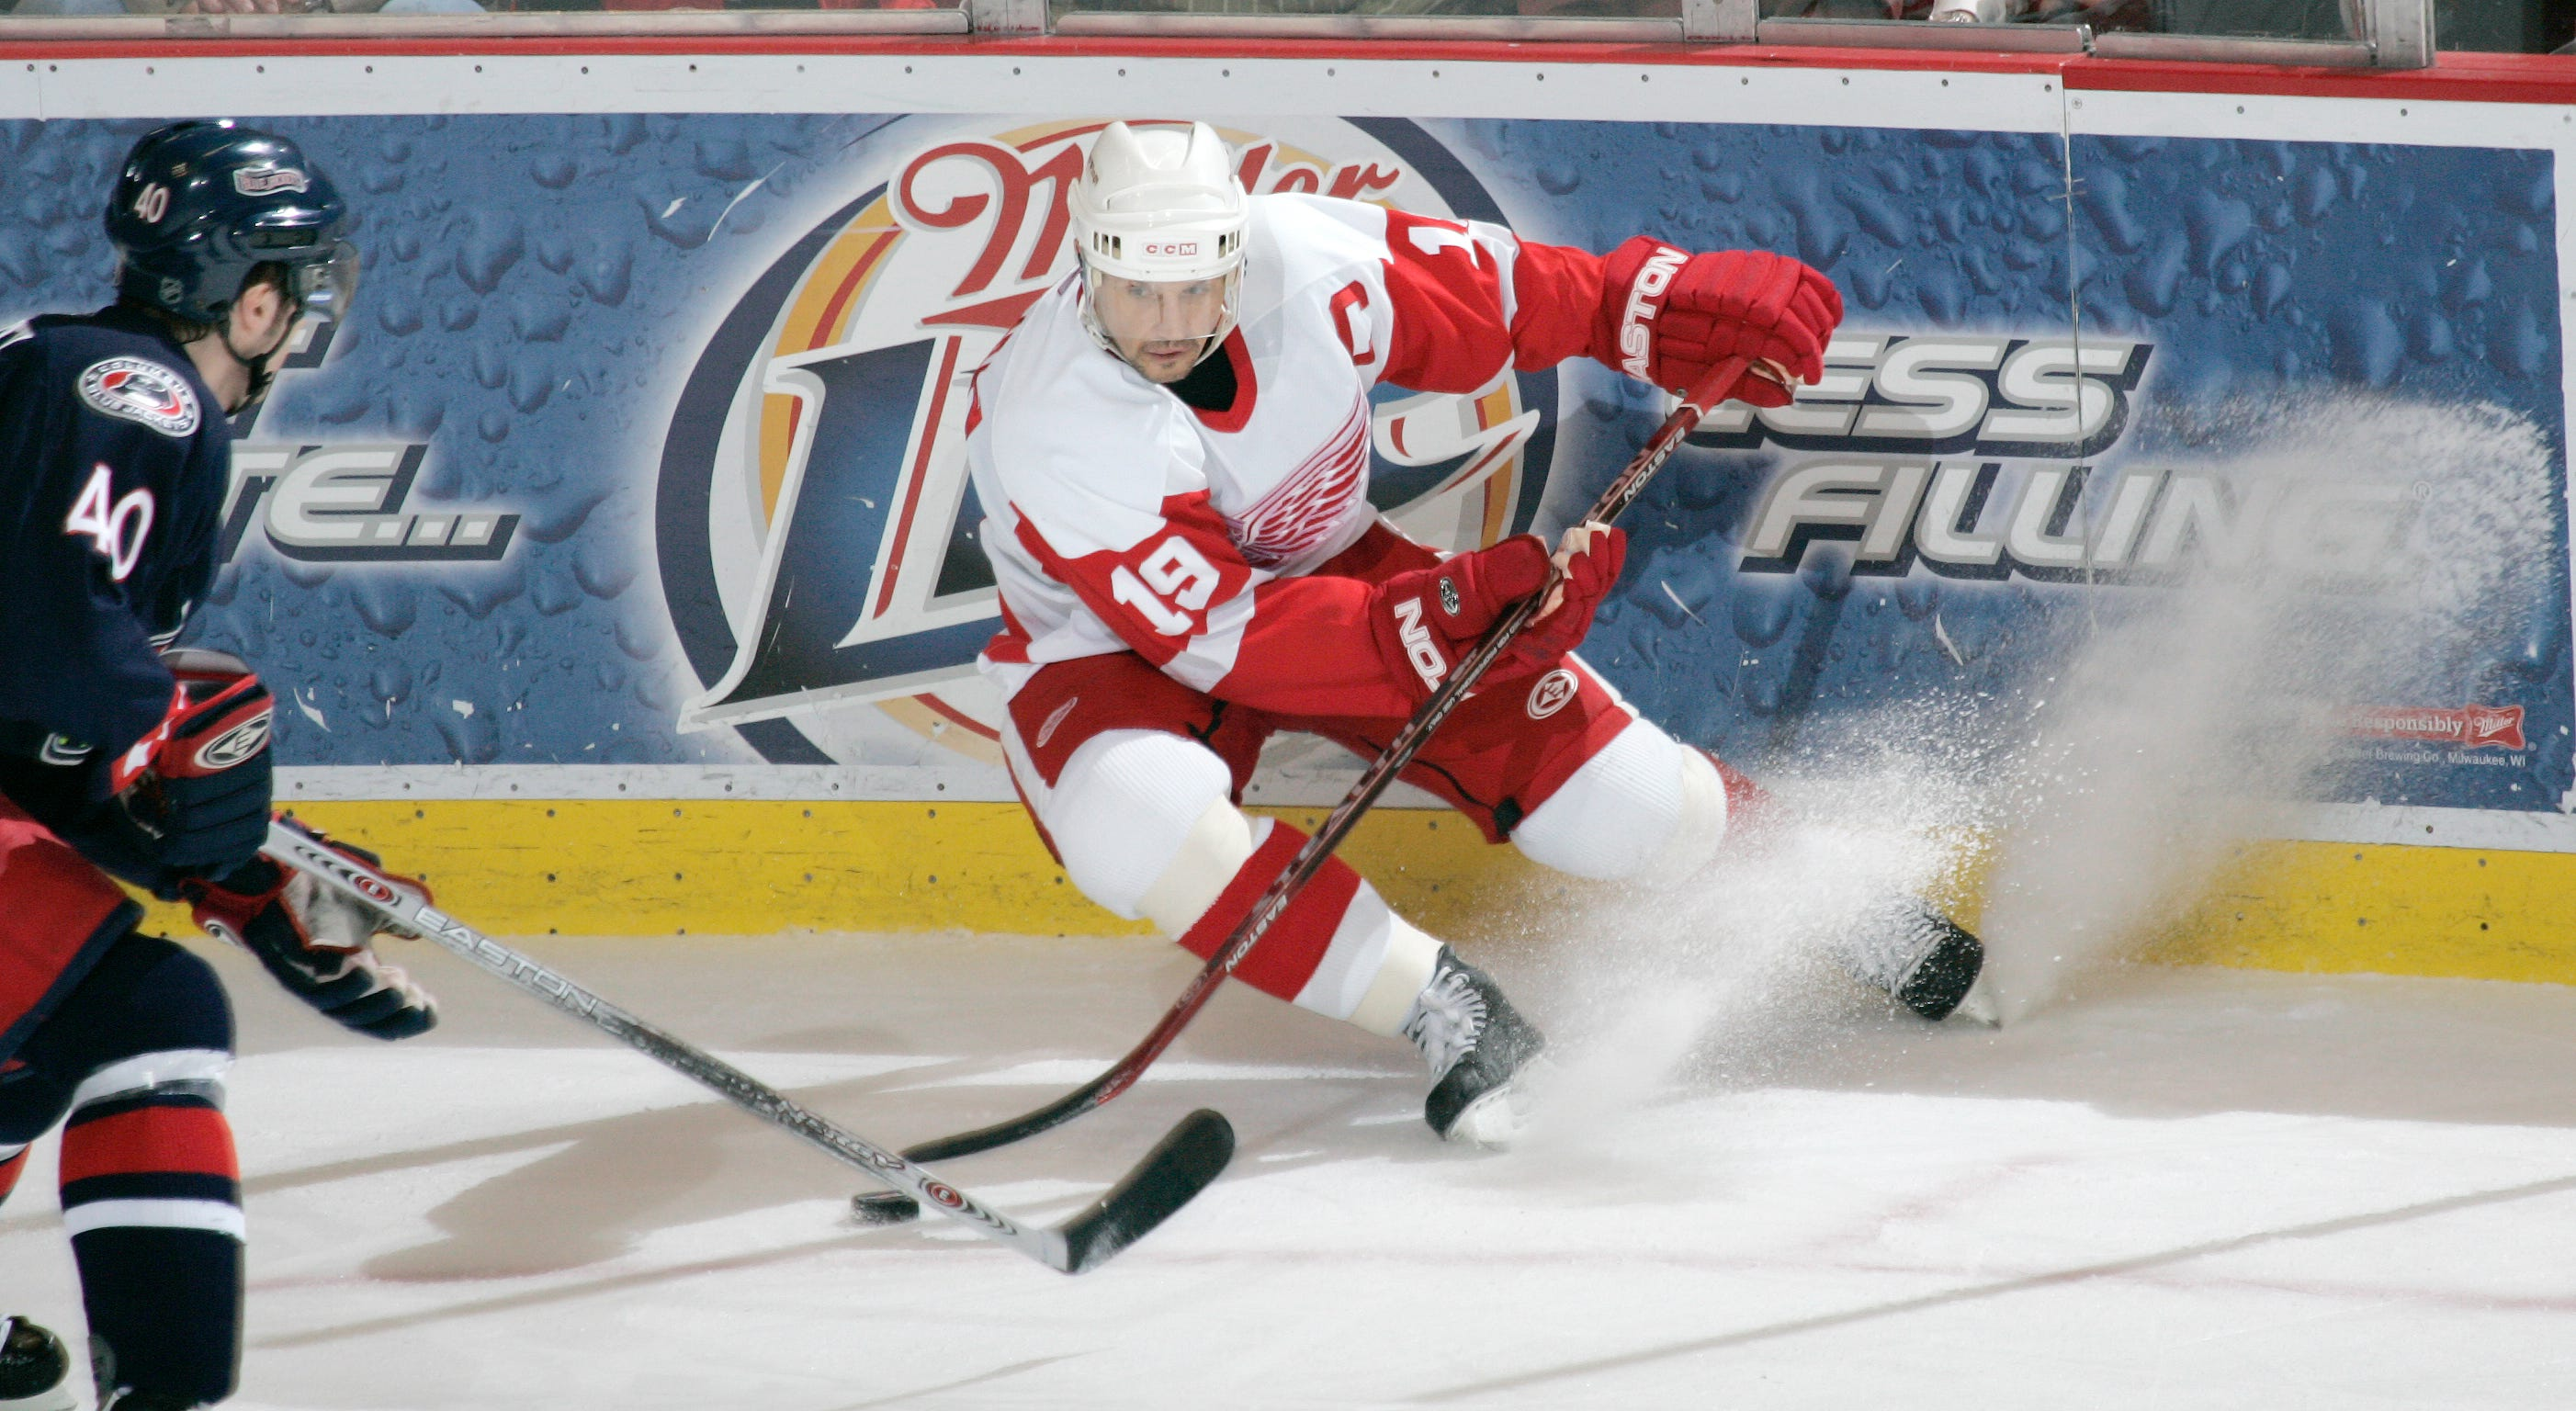 Red Wings captain Steve Yzerman puts on the brakes in front of Blue Jackets Jaroslav Balastik in a 2006 game.